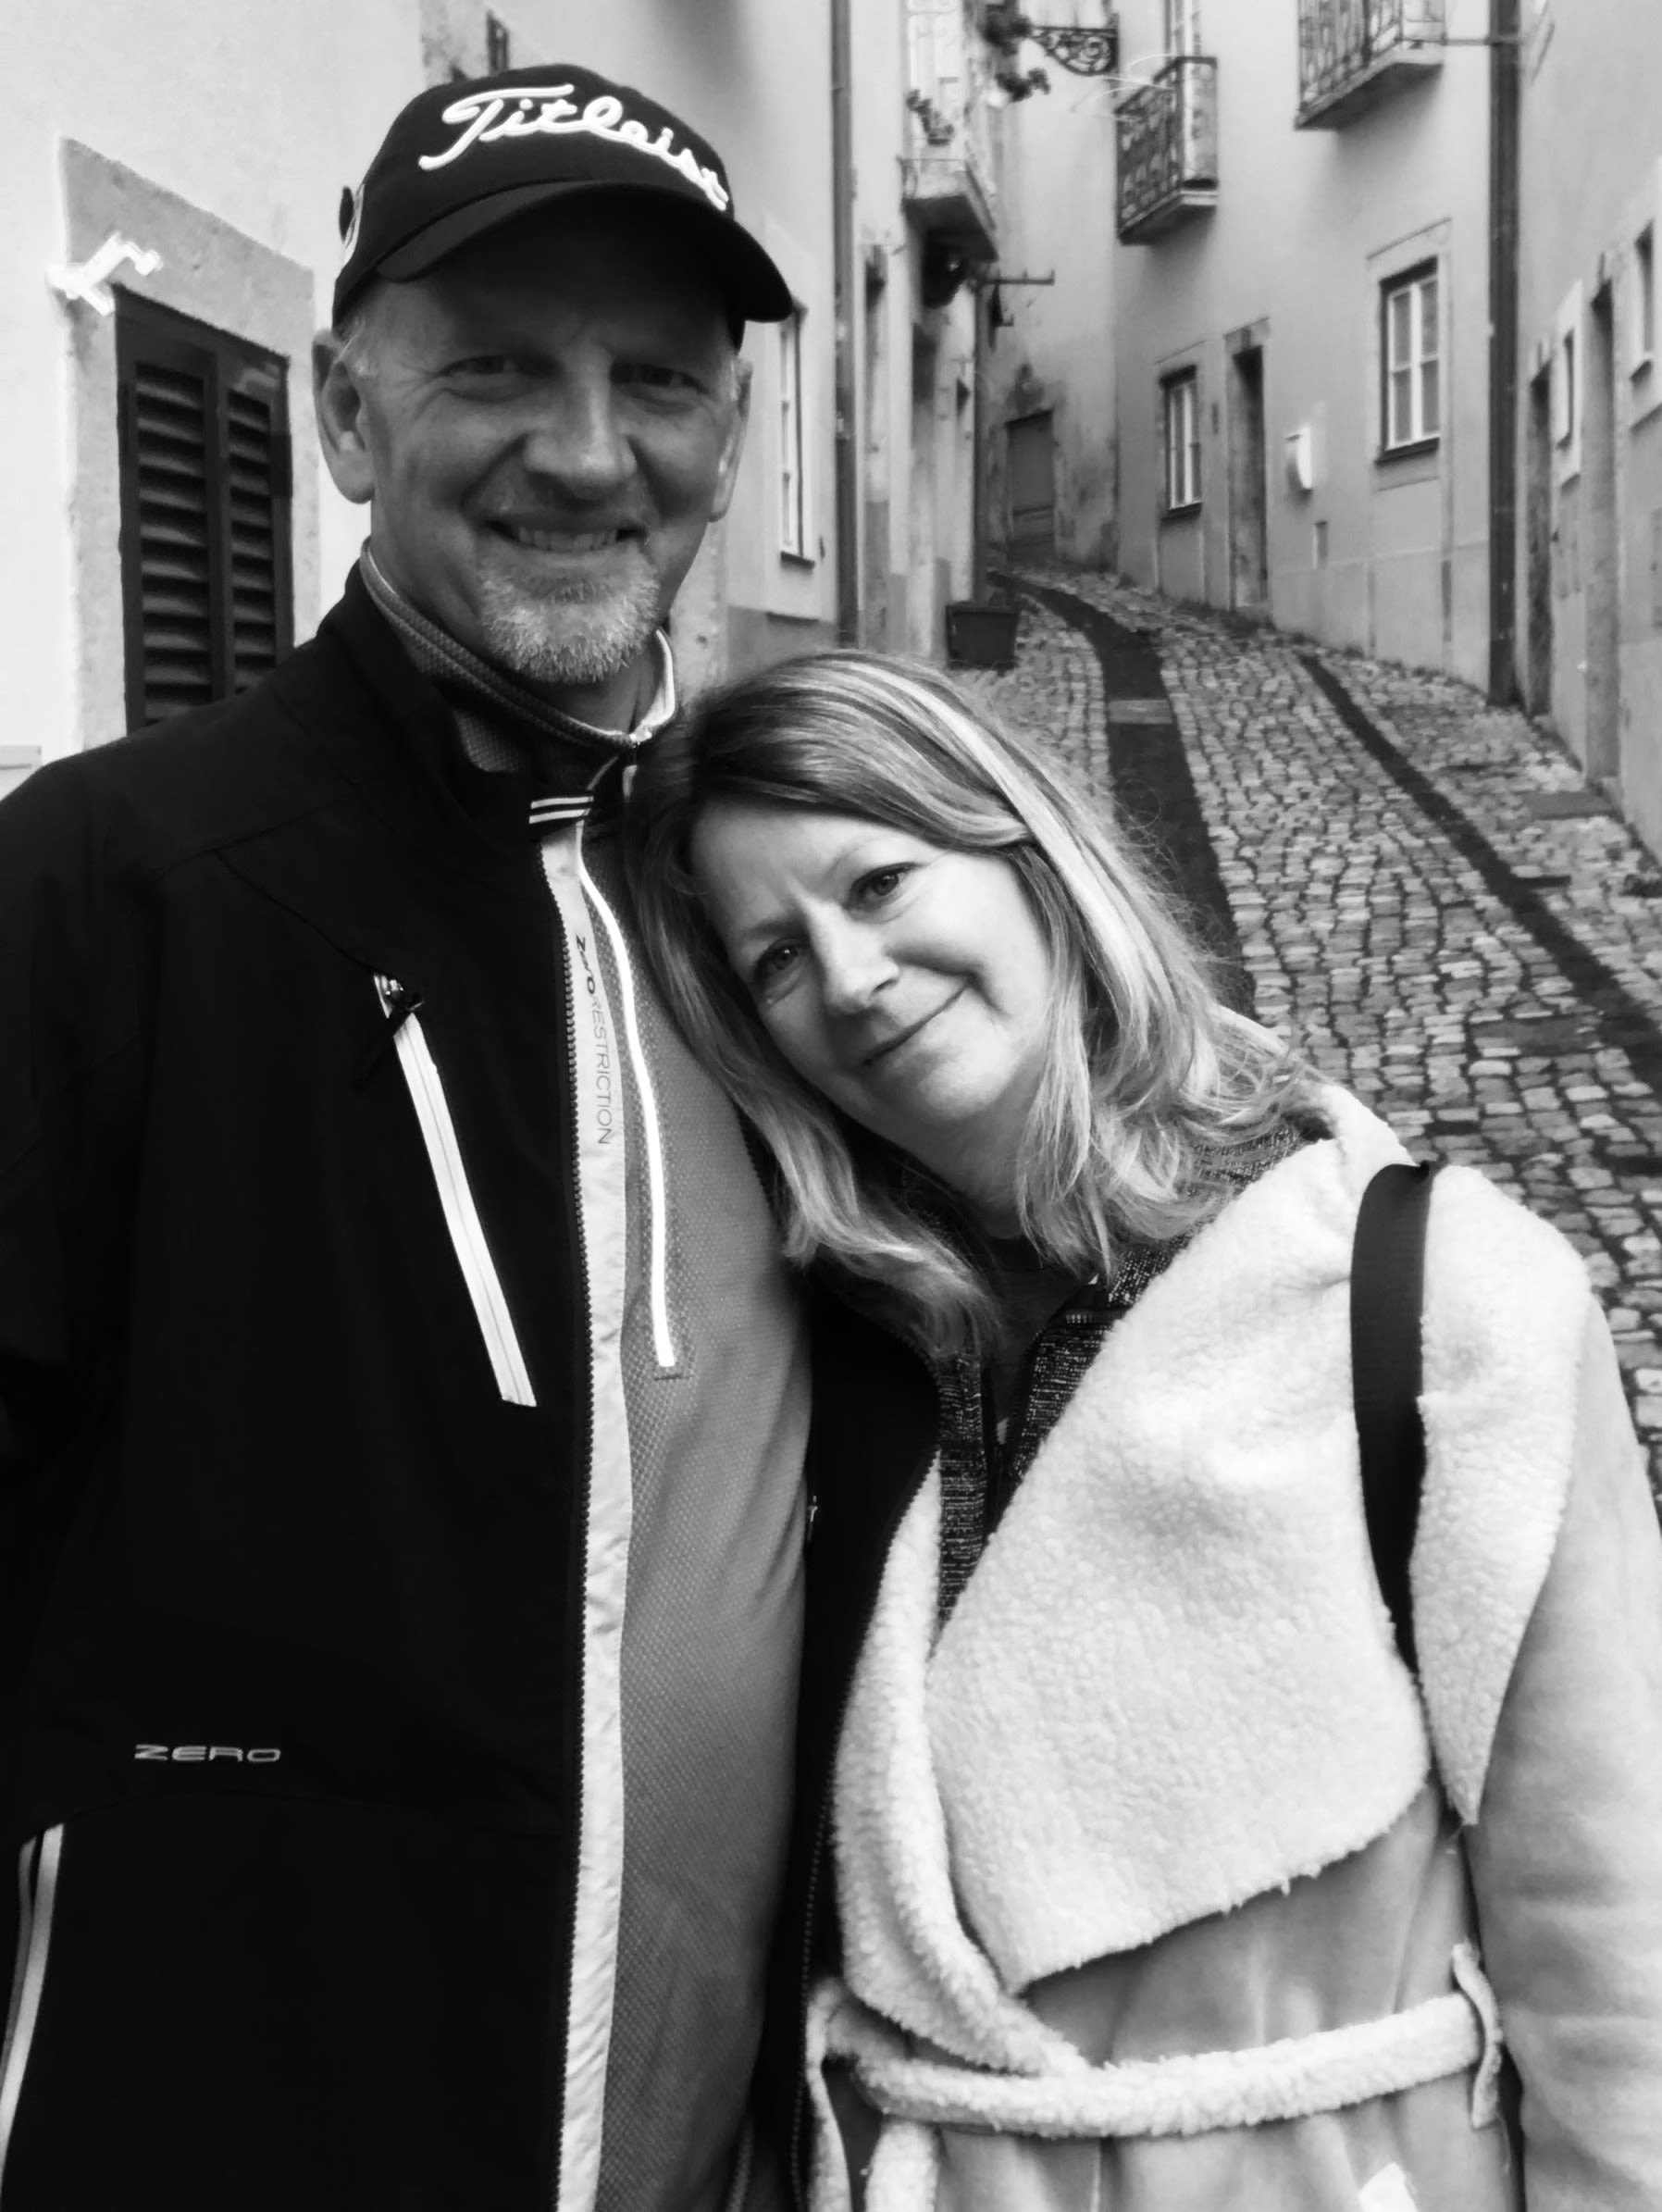 Doug and Karla Rohrbaugh pose for a photo in street in Lisbon, Portugal on Feb. 13, two days before arriving back in the United States.